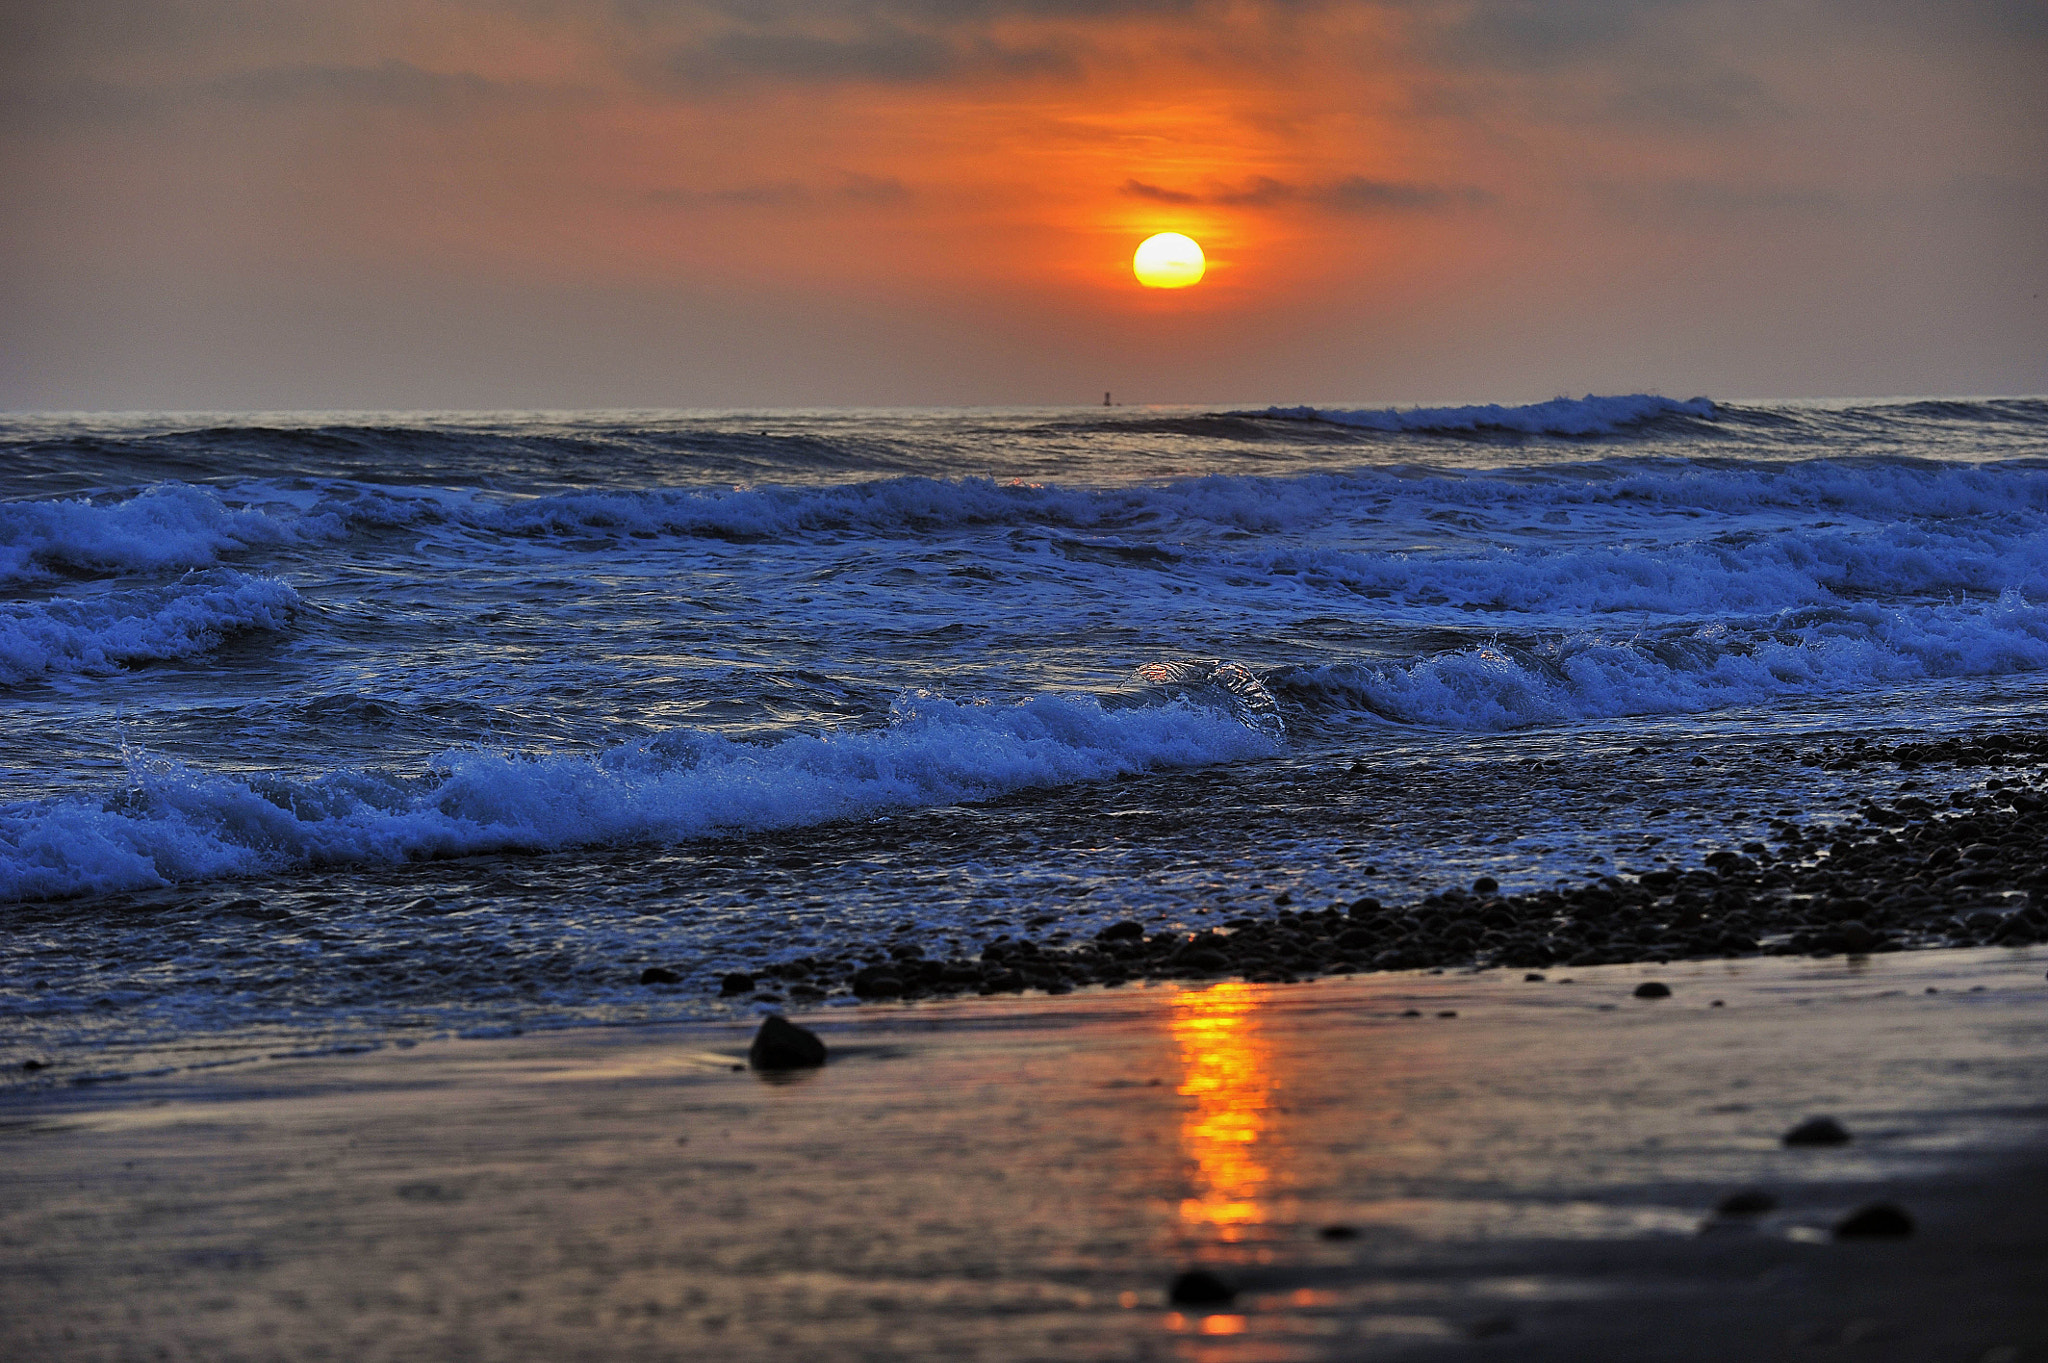 Photograph Sunset in Oceanside- May 8, 2012 by Rich Cruse on 500px